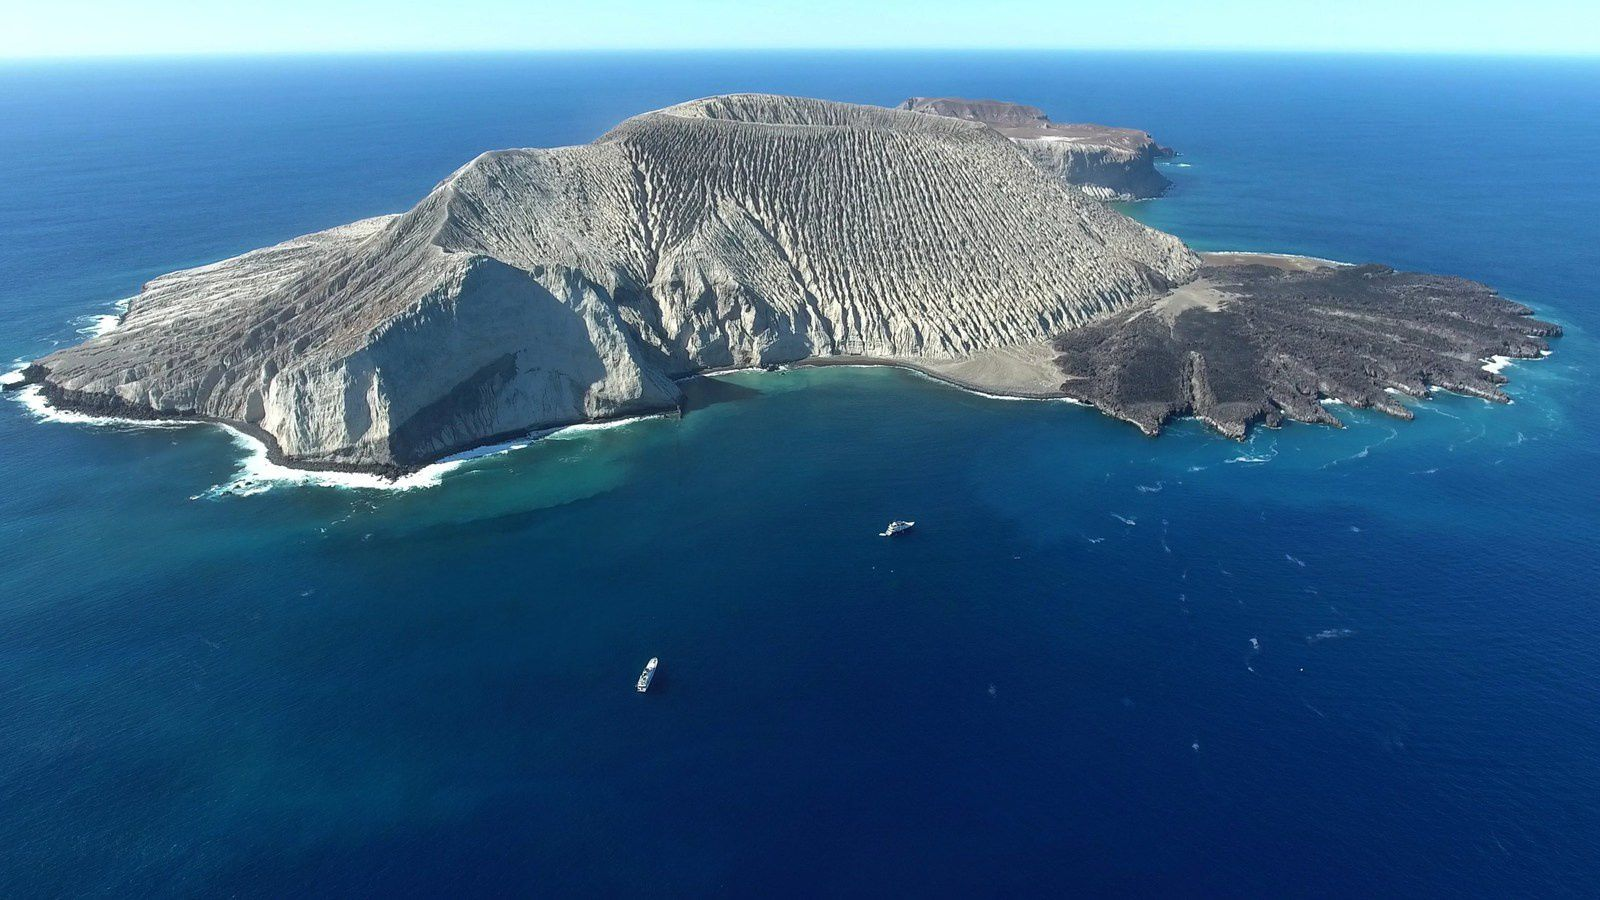 Archipelago Revillagigedo - San Benedicto Island with Bárcena volcano and its lava delta - one click to enlarge - photo from Diving BCS video.